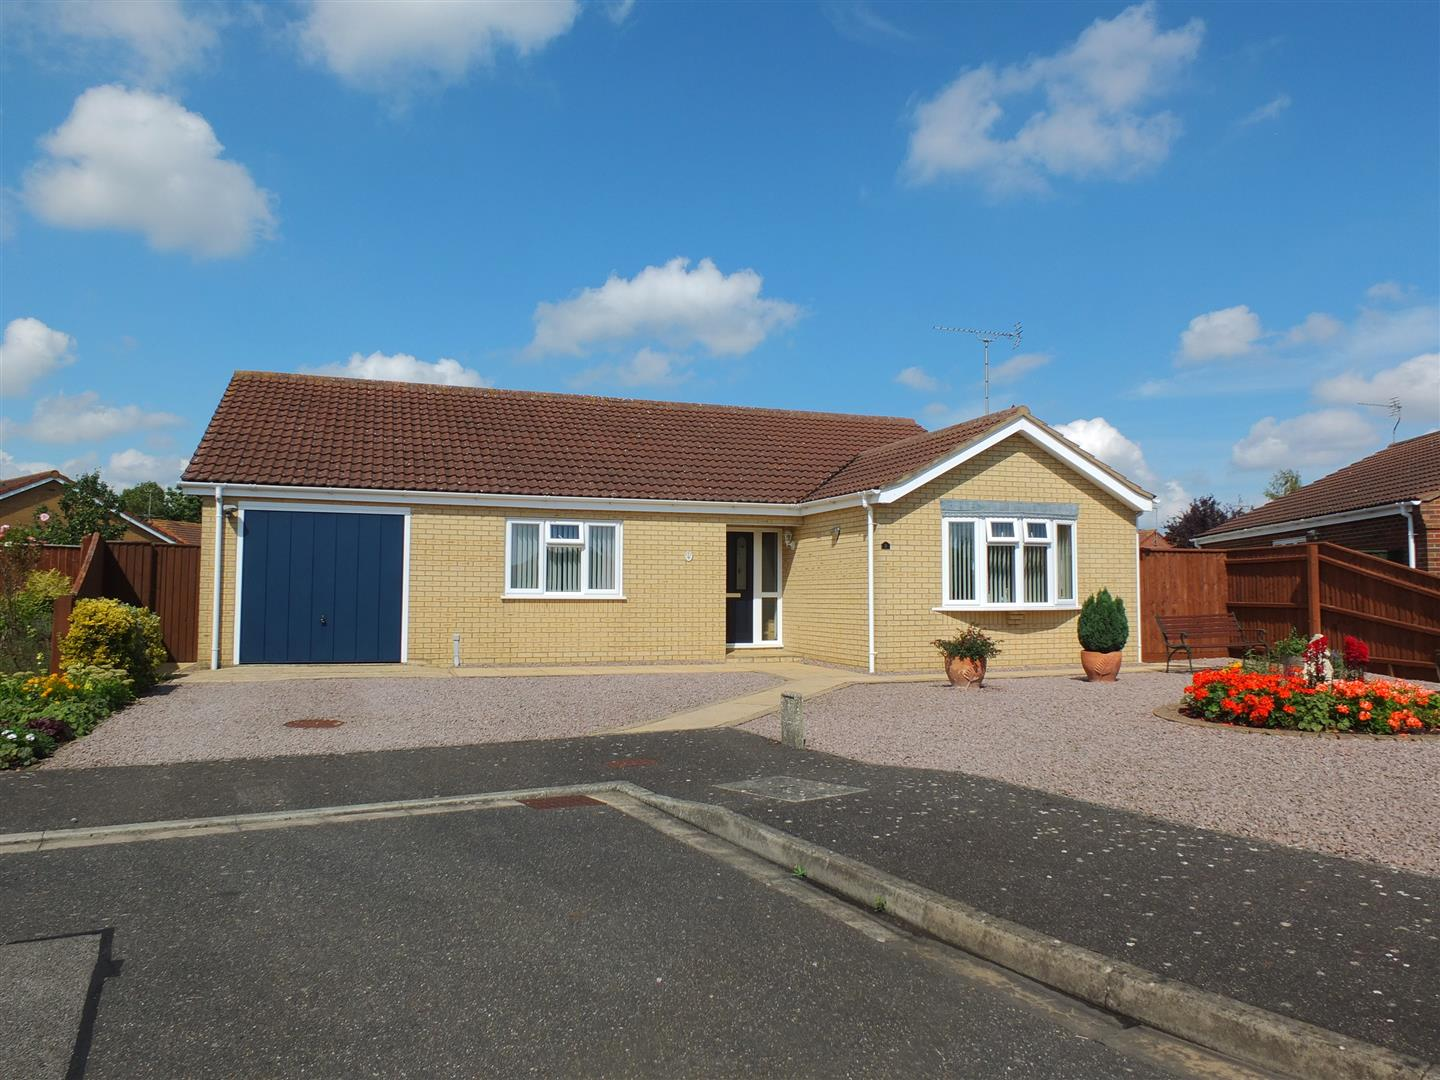 3 bed detached bungalow for sale in Long Sutton Spalding, PE12 9FT, PE12